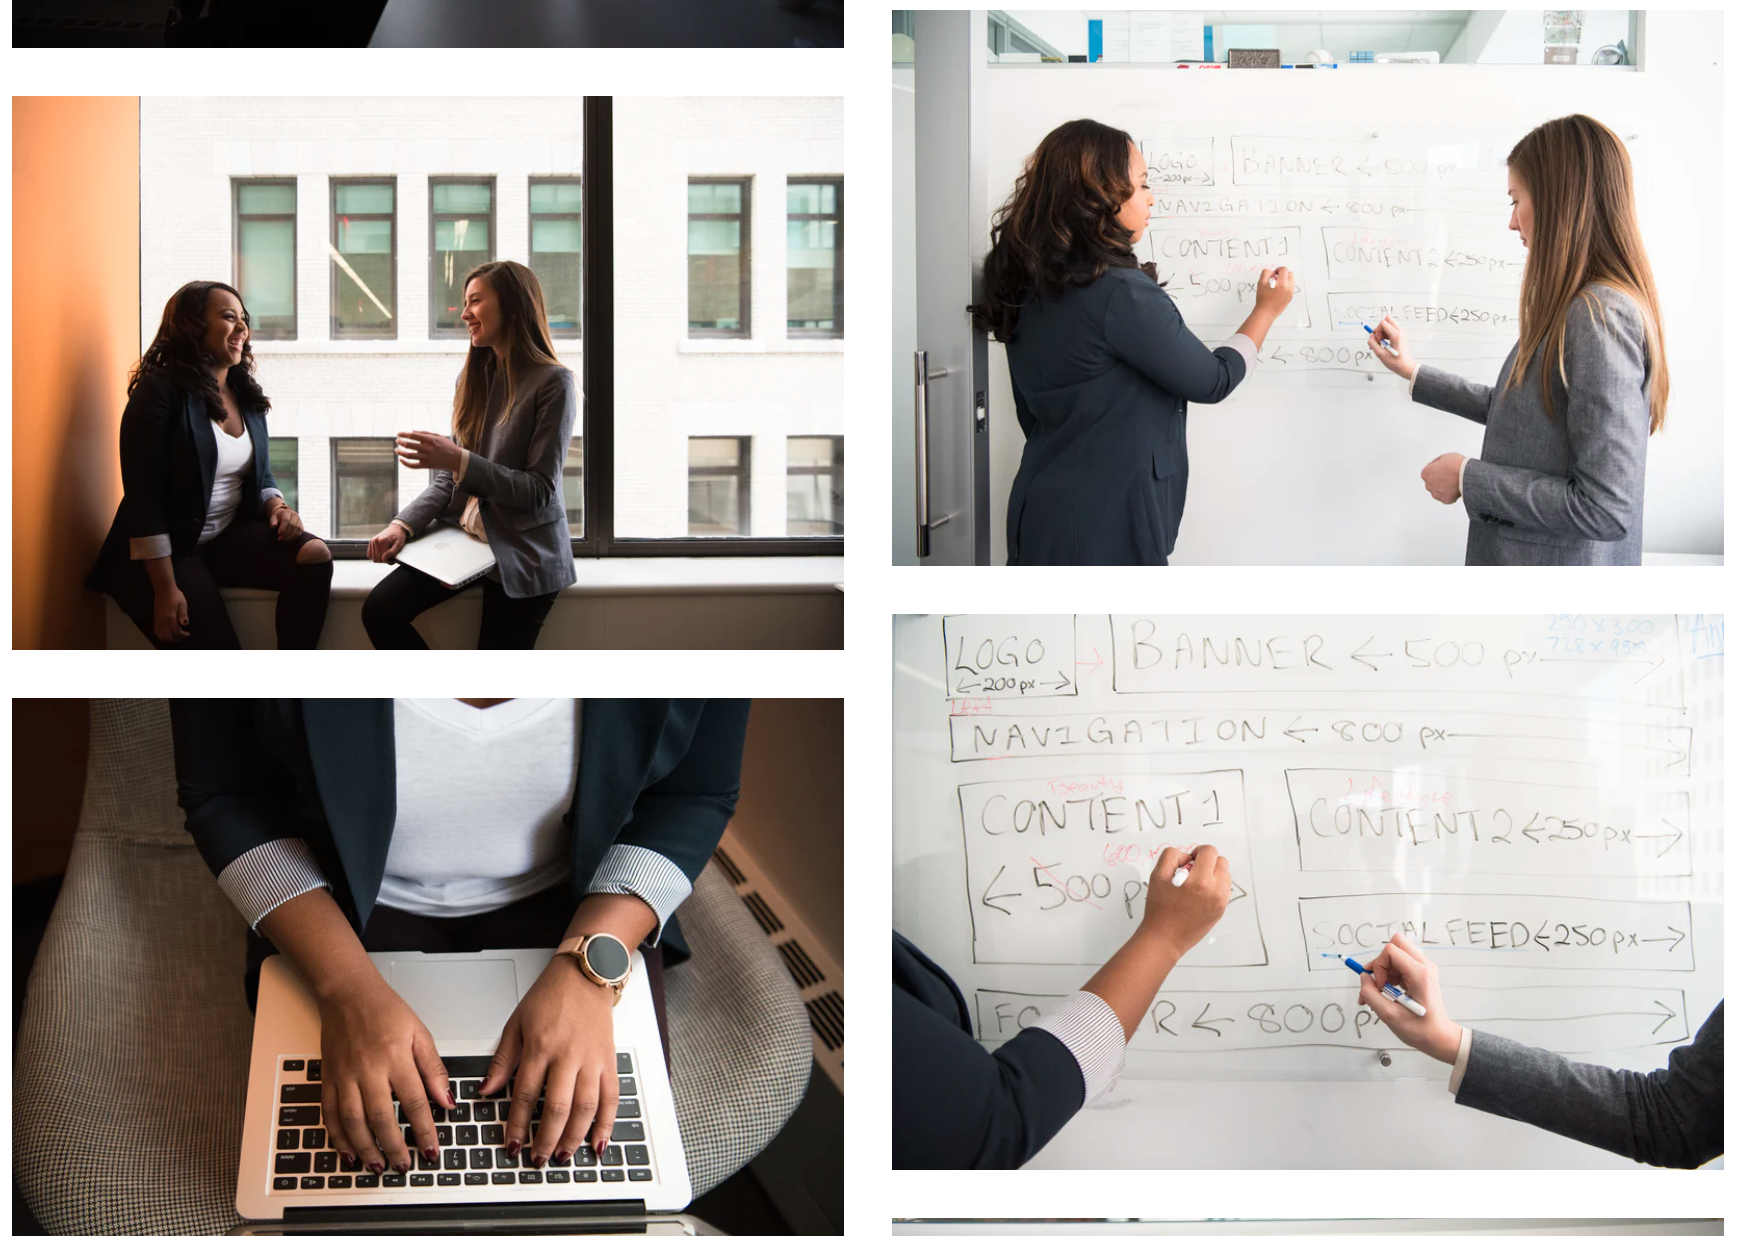 Example of stock photography showing several images of women in business settings writing on whiteboards and typing.